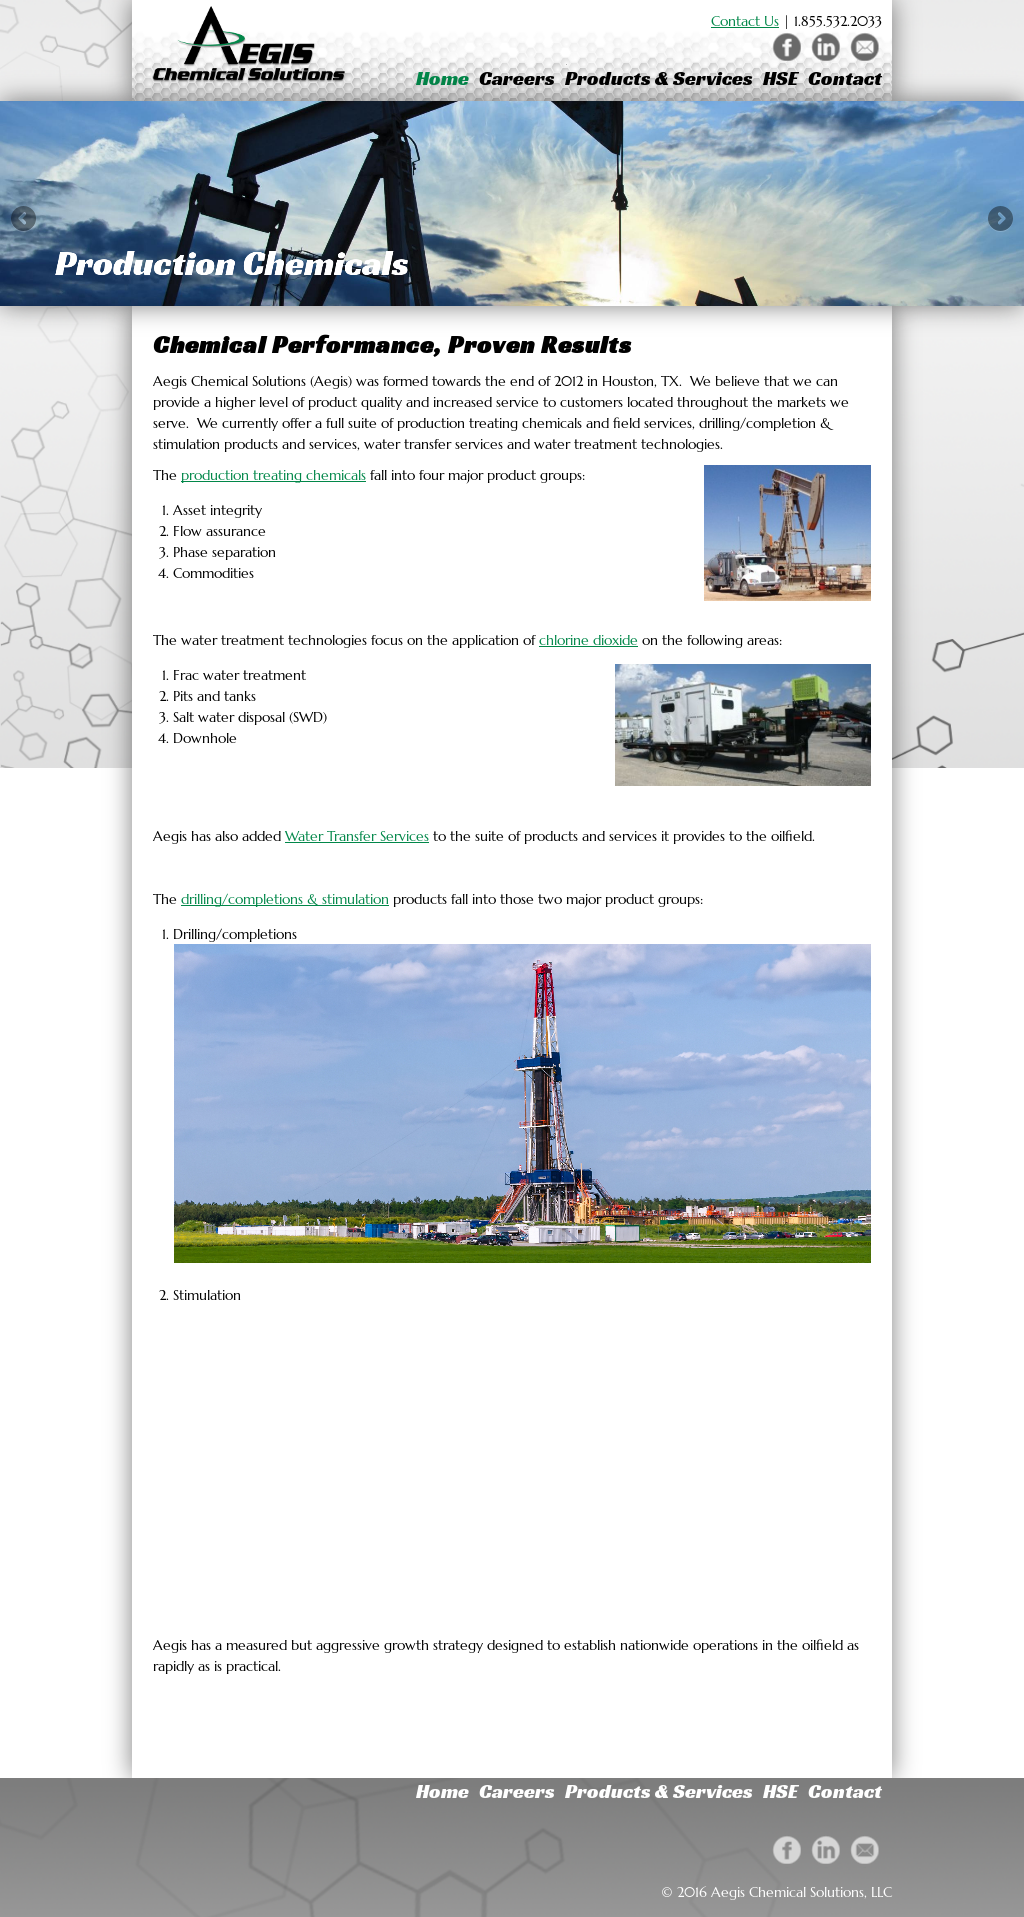 Aegis Chemical Solutions Competitors, Revenue and Employees - Owler